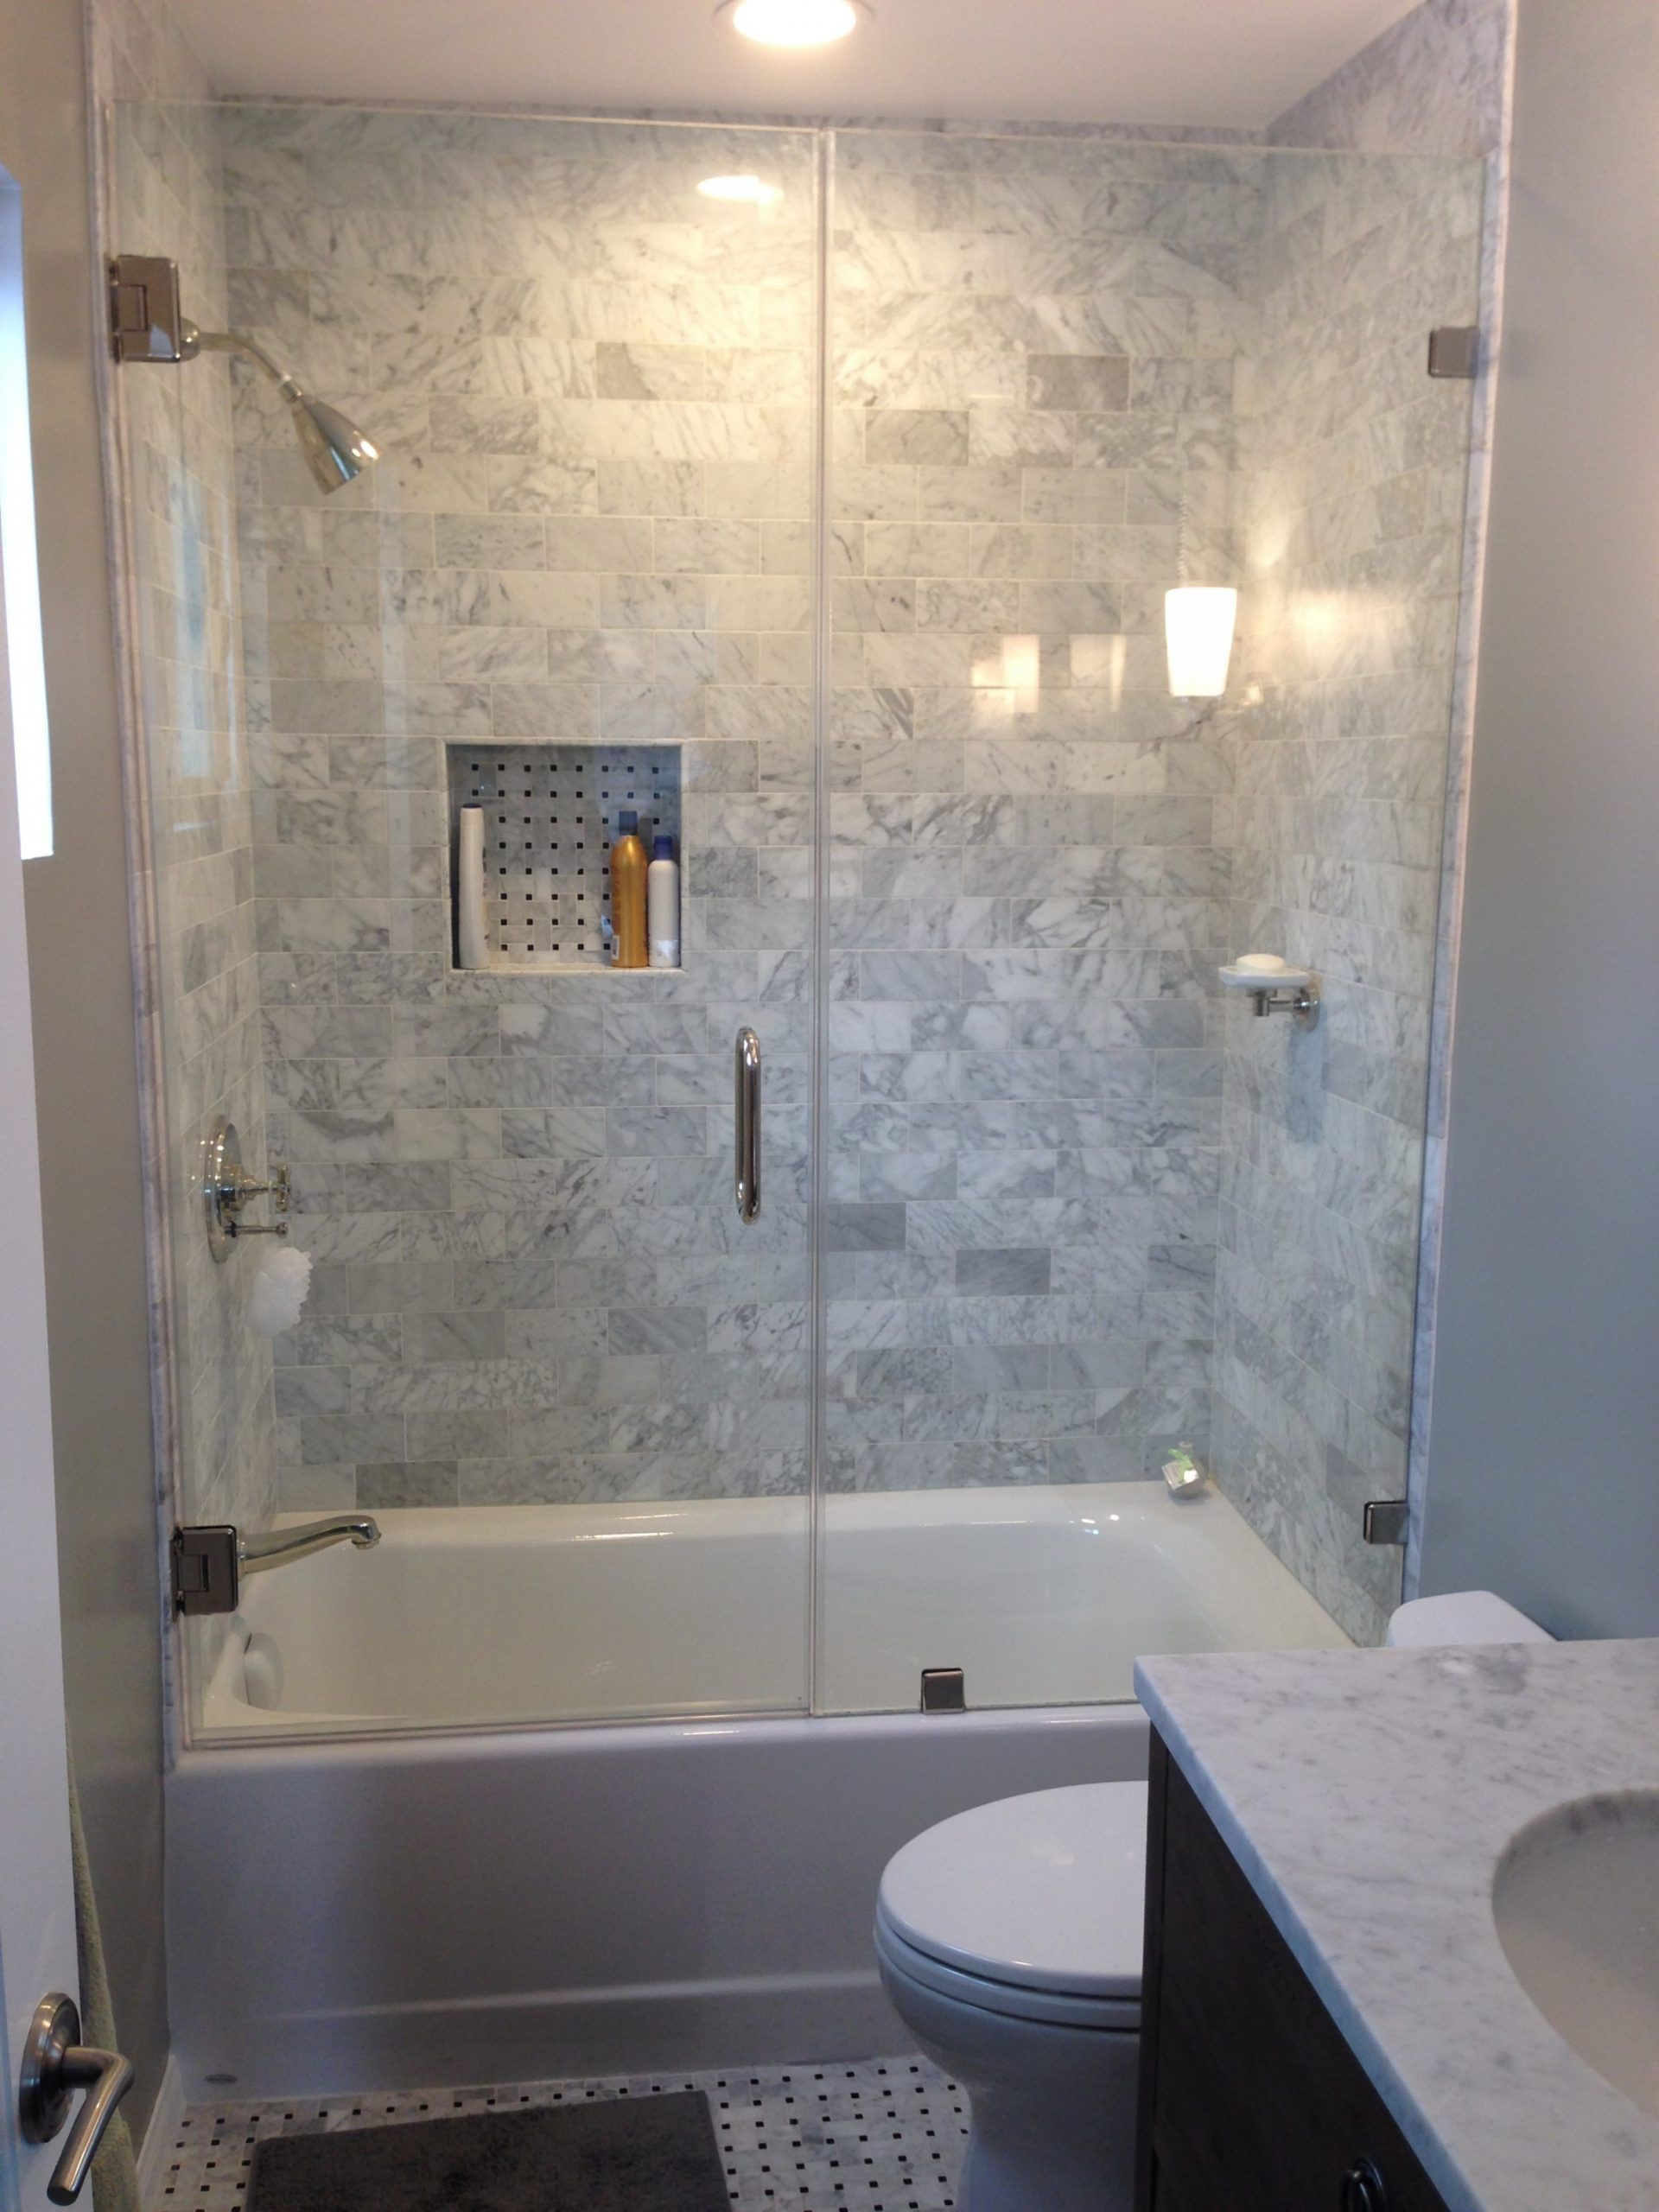 Small Bathroom Ideas With Separate Tub And Shower Bathroom Tub Shower Bathroom Remodel Shower Bathroom Tub Shower Combo